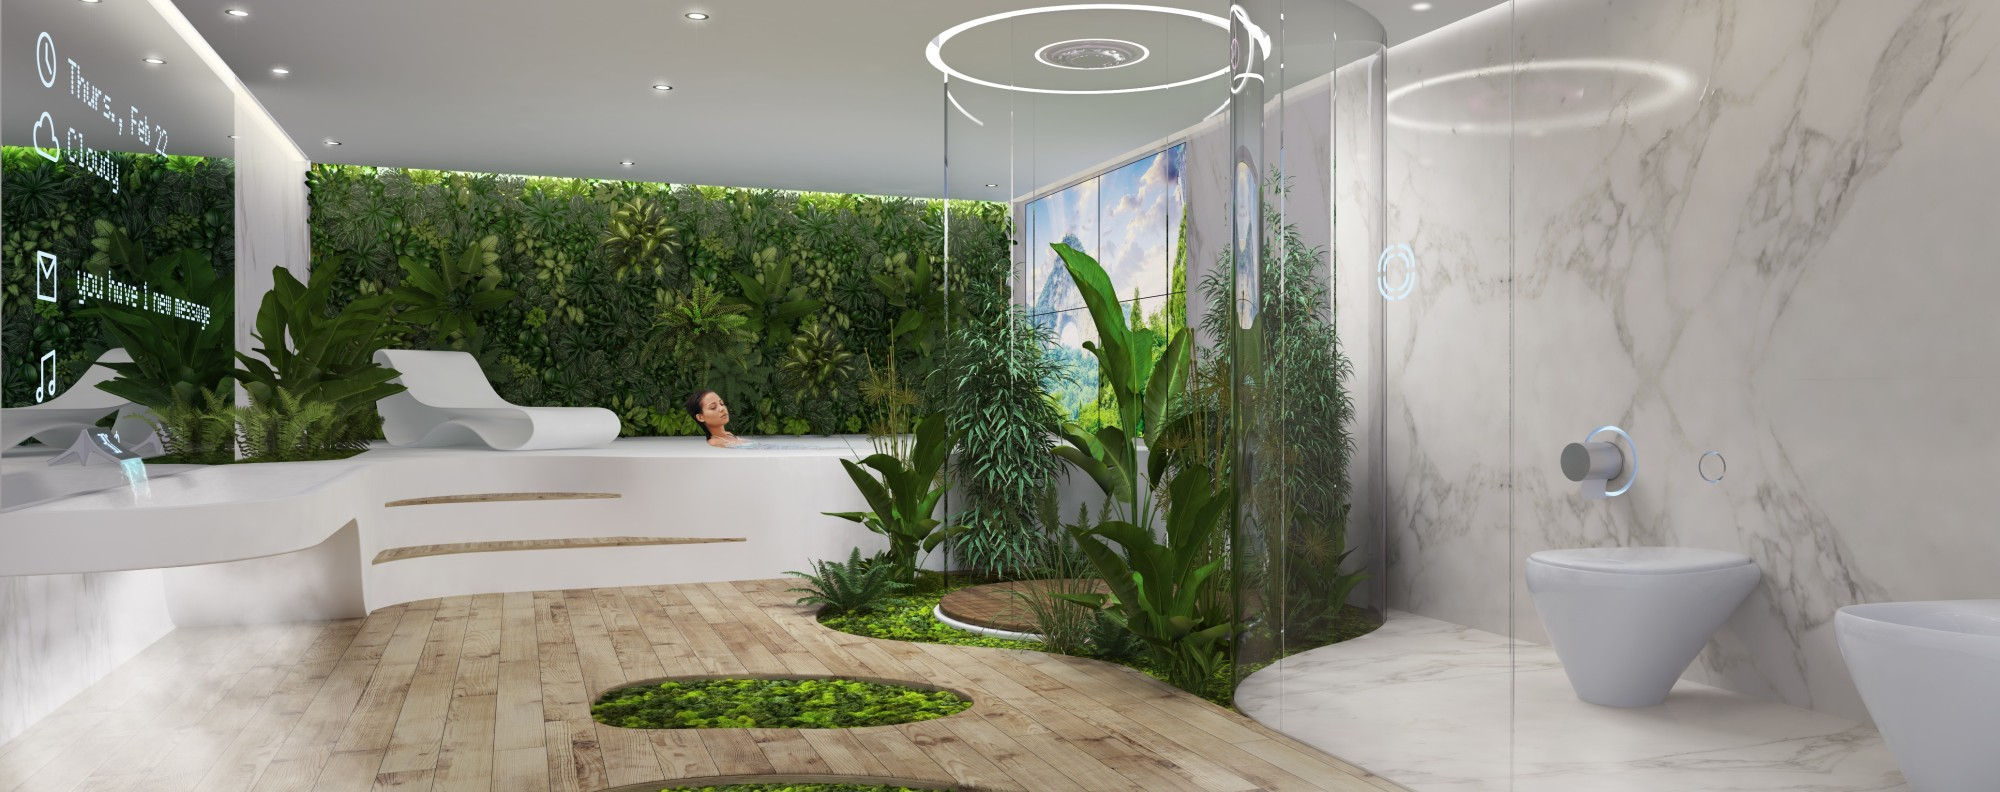 DesignLiberou0027s Bathroom Is A Marriage Of Technological Innovation And  Natural Power.